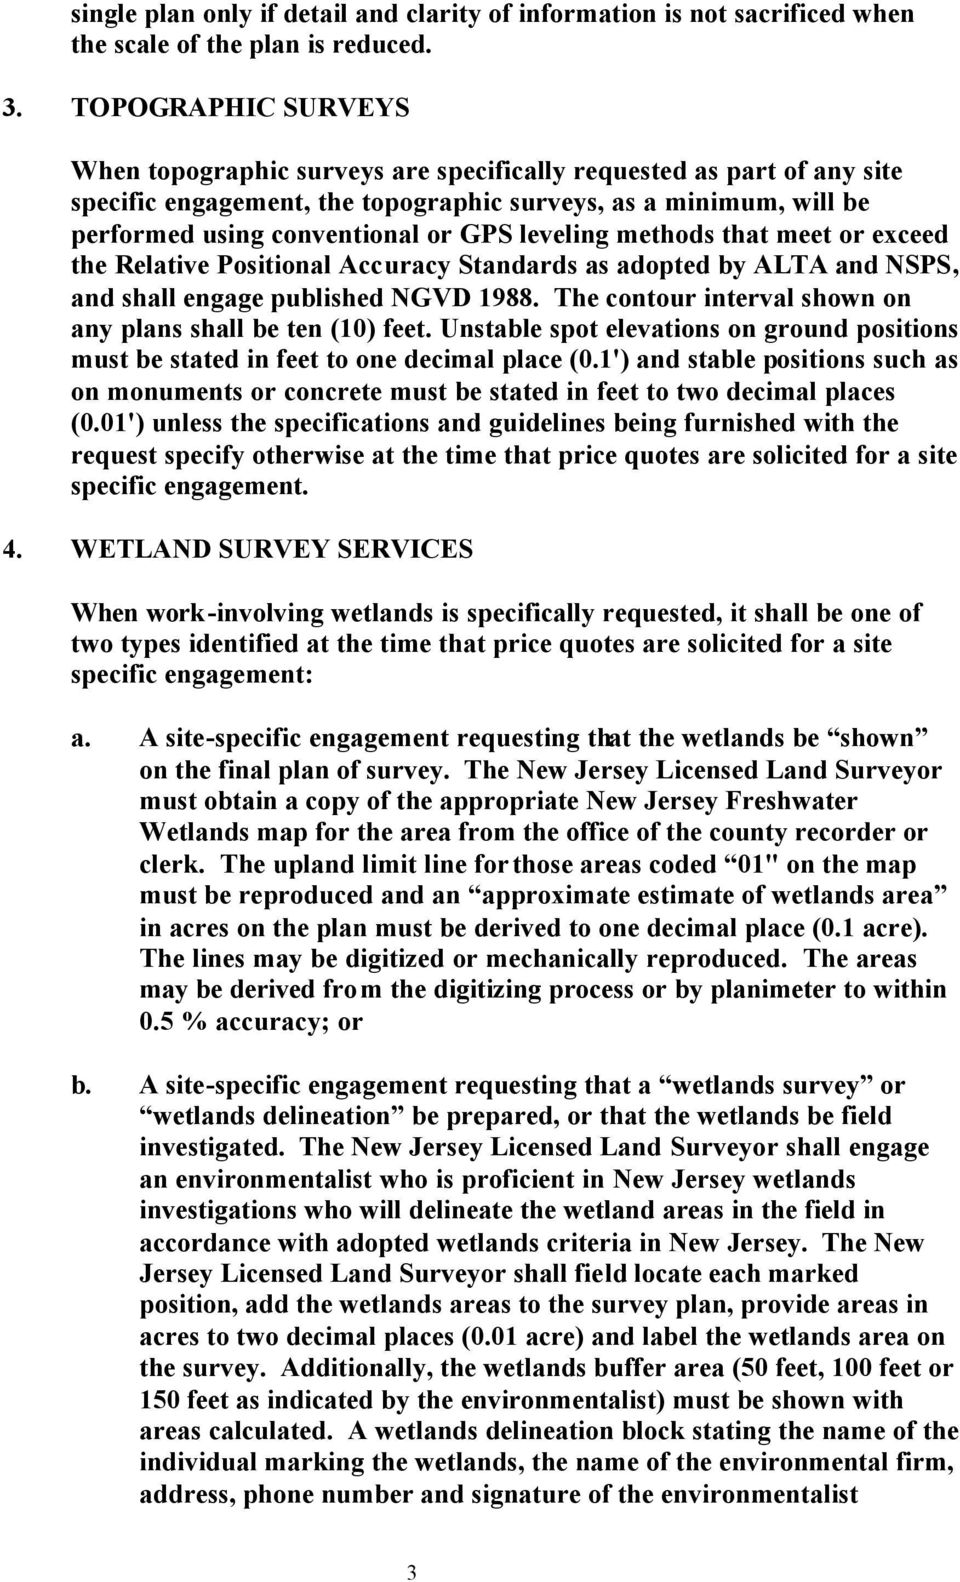 leveling methods that meet or exceed the Relative Positional Accuracy Standards as adopted by ALTA and NSPS, and shall engage published NGVD 1988.